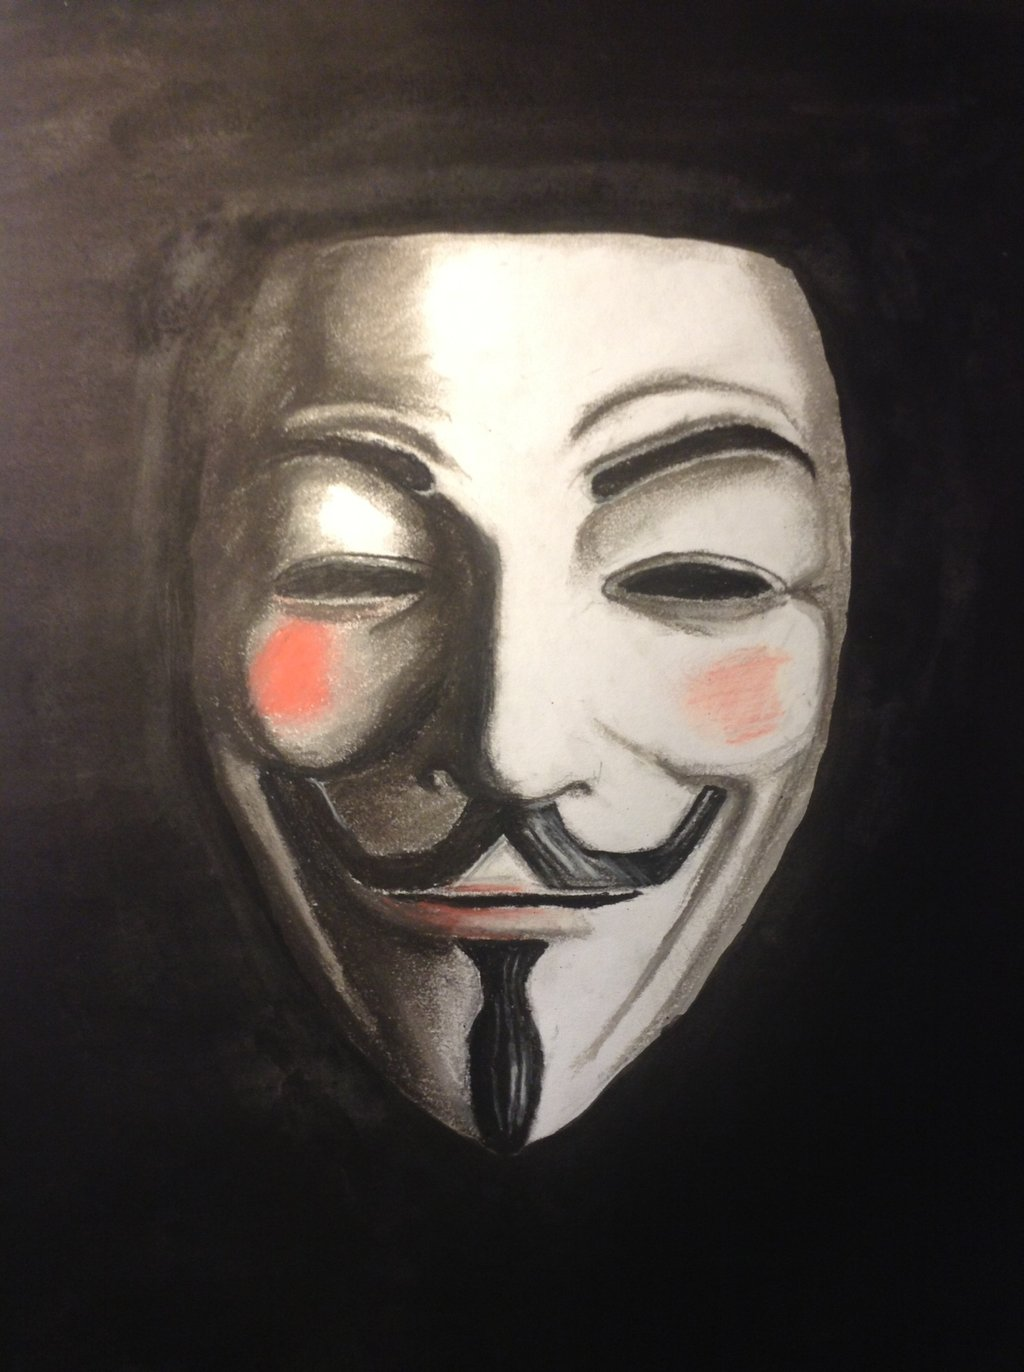 Guy Fawkes Mask Wallpaper